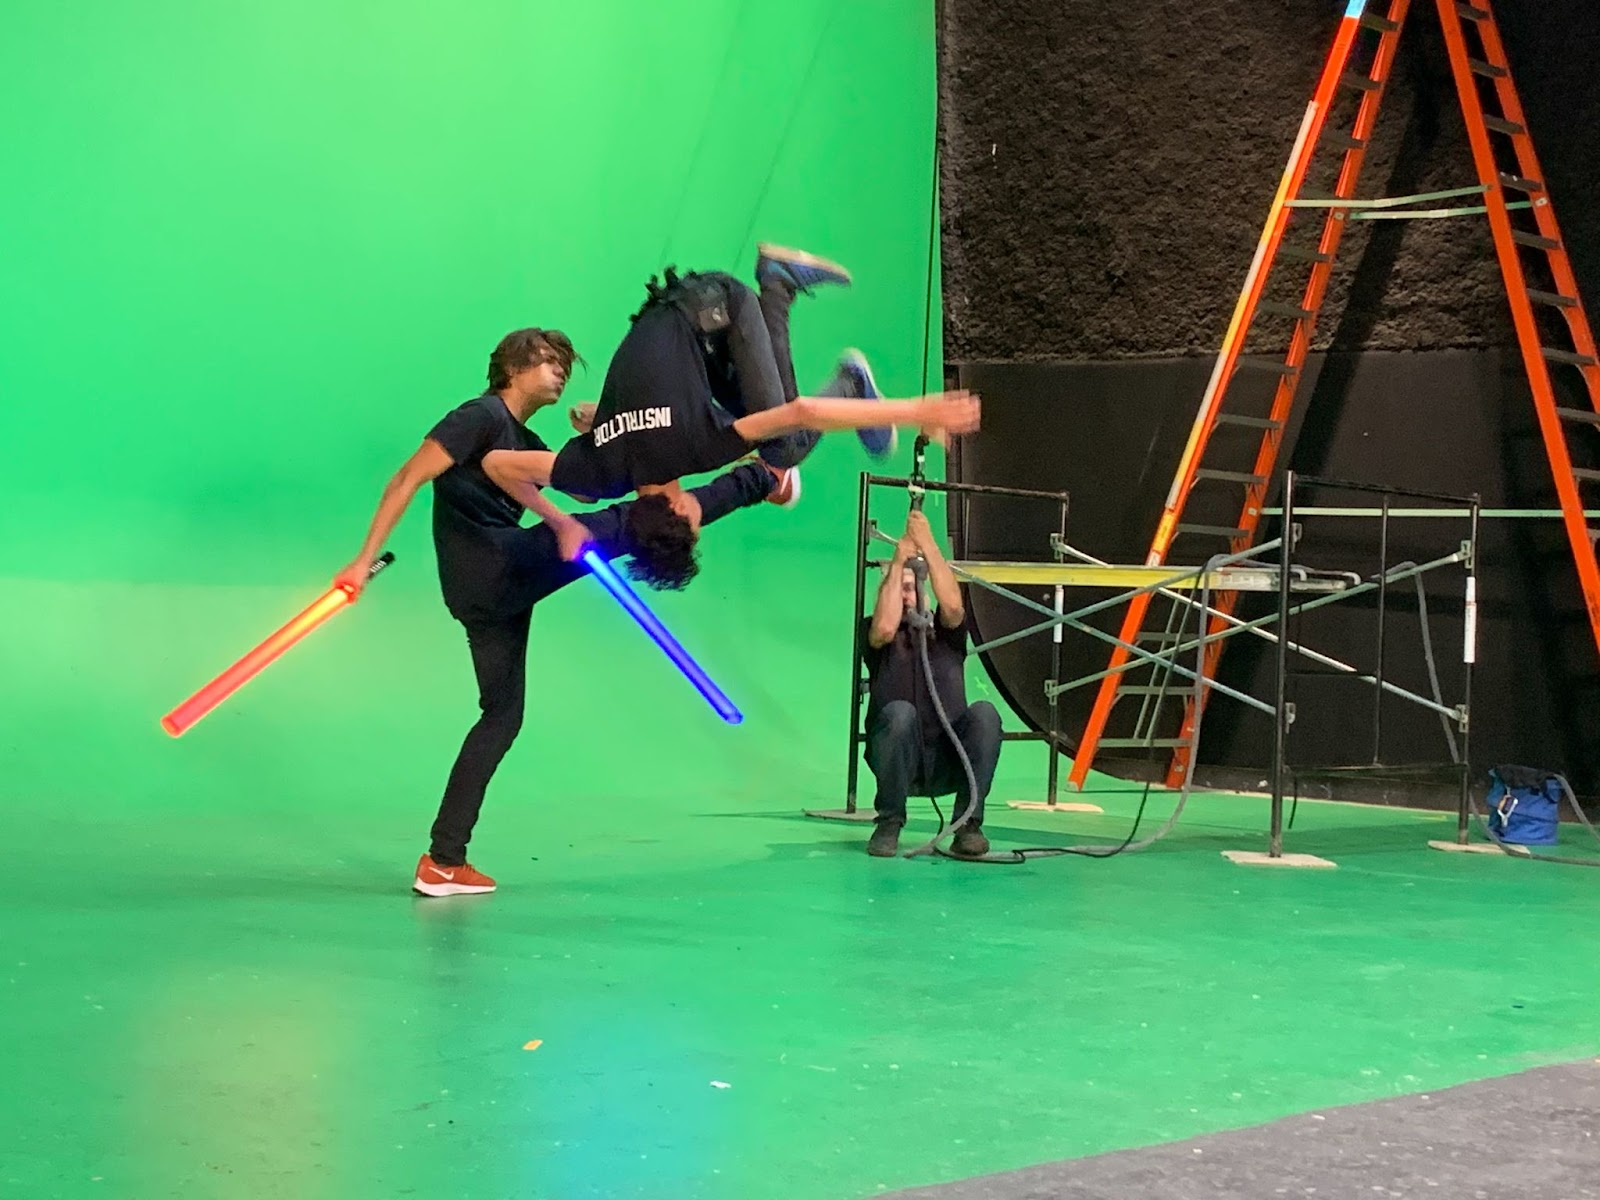 Tricks of the Trade: Stunt Work in Class at MPI - Blog - Motion Picture Institute - mpWOEYAqe_S_1sWUbnE6-O4Xyyb_p-YvBnH5JFSBndGSehaaiHcFi7xIOz5cG9jBwHUinDNdVpthxjpaUWV5XKEqlNazoCKowTkOMvcaD9L-sHBbQcbkPmeRyMkjJGW_PXk1PmIF